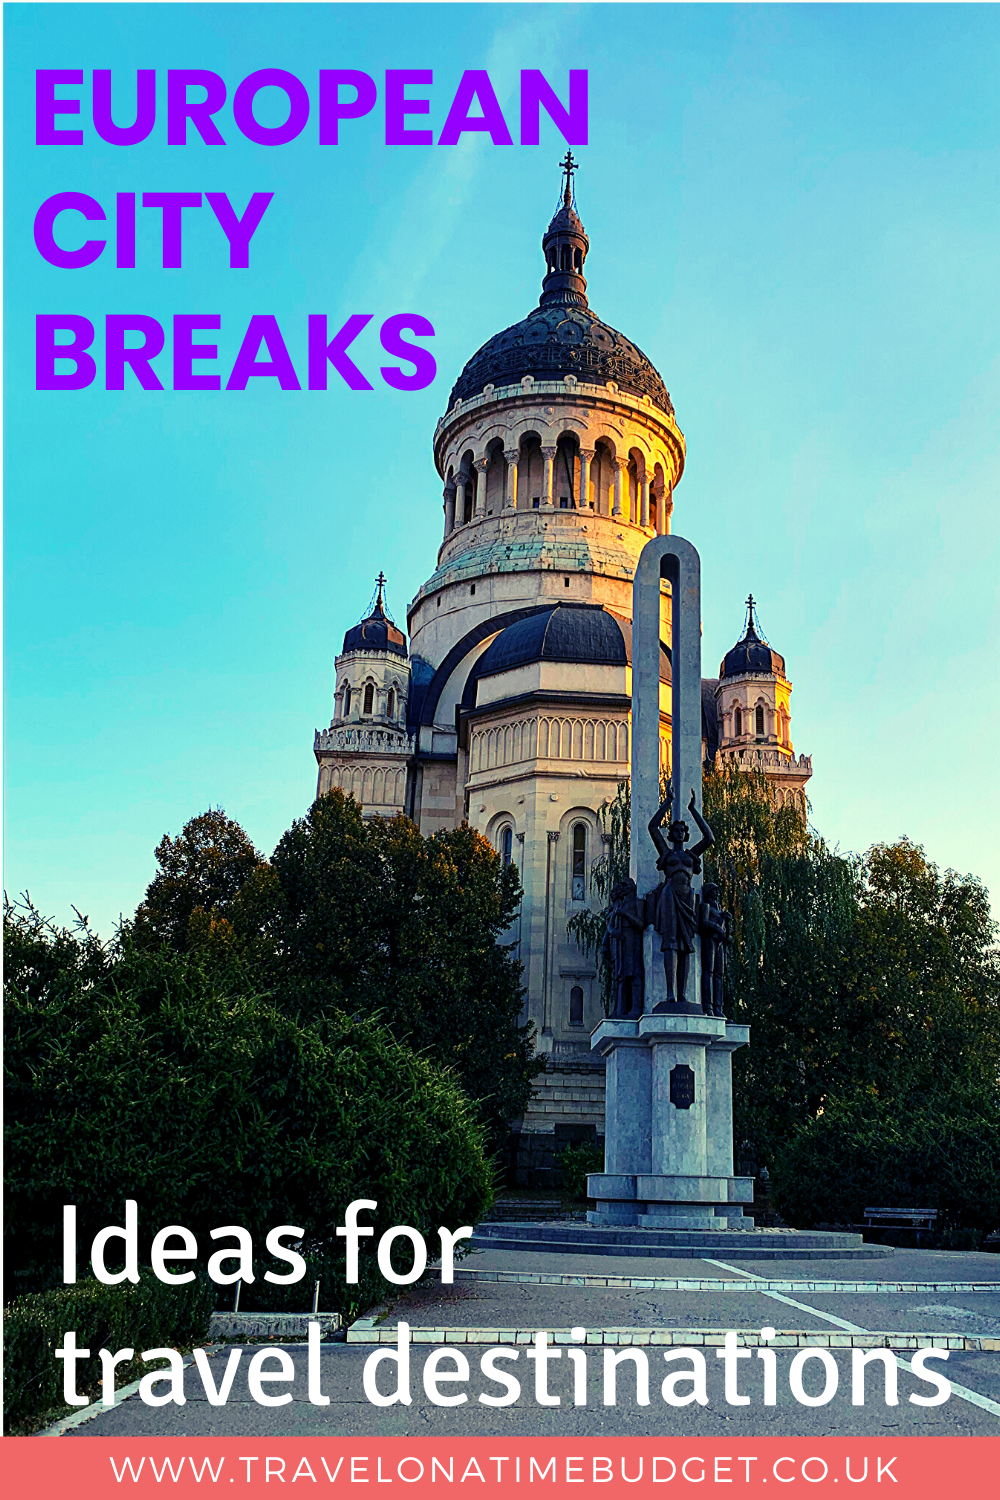 European city breaks: ideas for travel destinations. If you're thinking about a short break to Europe or a European weekend away, there are many places to consider. My post outlines some European short breaks and European city breaks you'll love, including to Italy's Verona, the Alhambra in Spain, and Cluj-Napoca in Romania. Read my post for ideas for European short breaks you'll love. #europe #europetravel #travel #shortbreaks #europecitybreaks